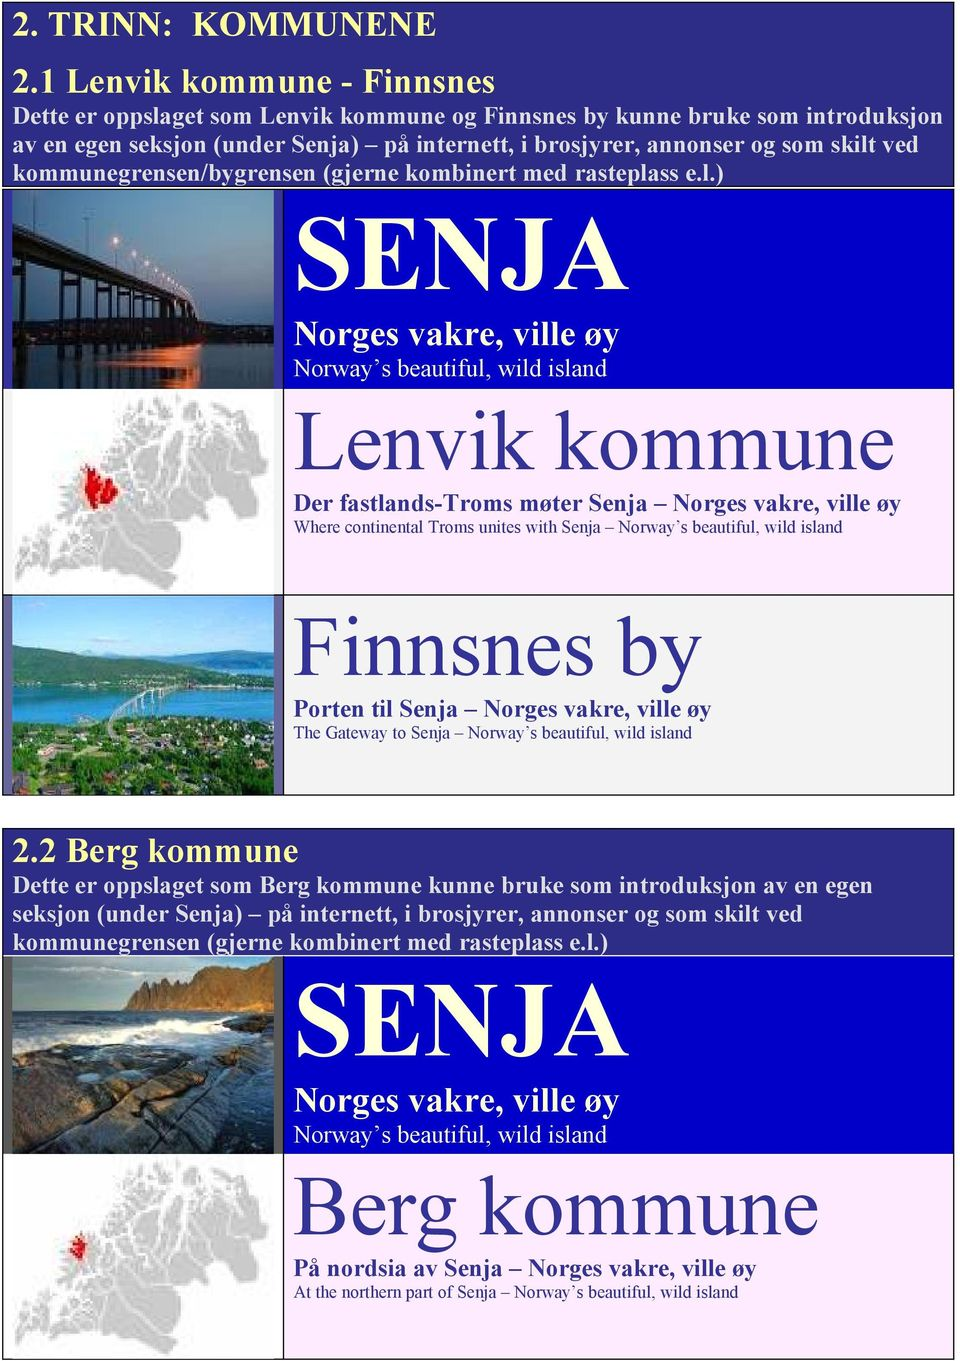 annonser og som skilt ved kommunegrensen/bygrensen (gjerne kombinert med rasteplass e.l.) Lenvik kommune Der fastlands-troms møter Senja Where continental Troms unites with Senja Finnsnes by Porten til Senja The Gateway to Senja 2.